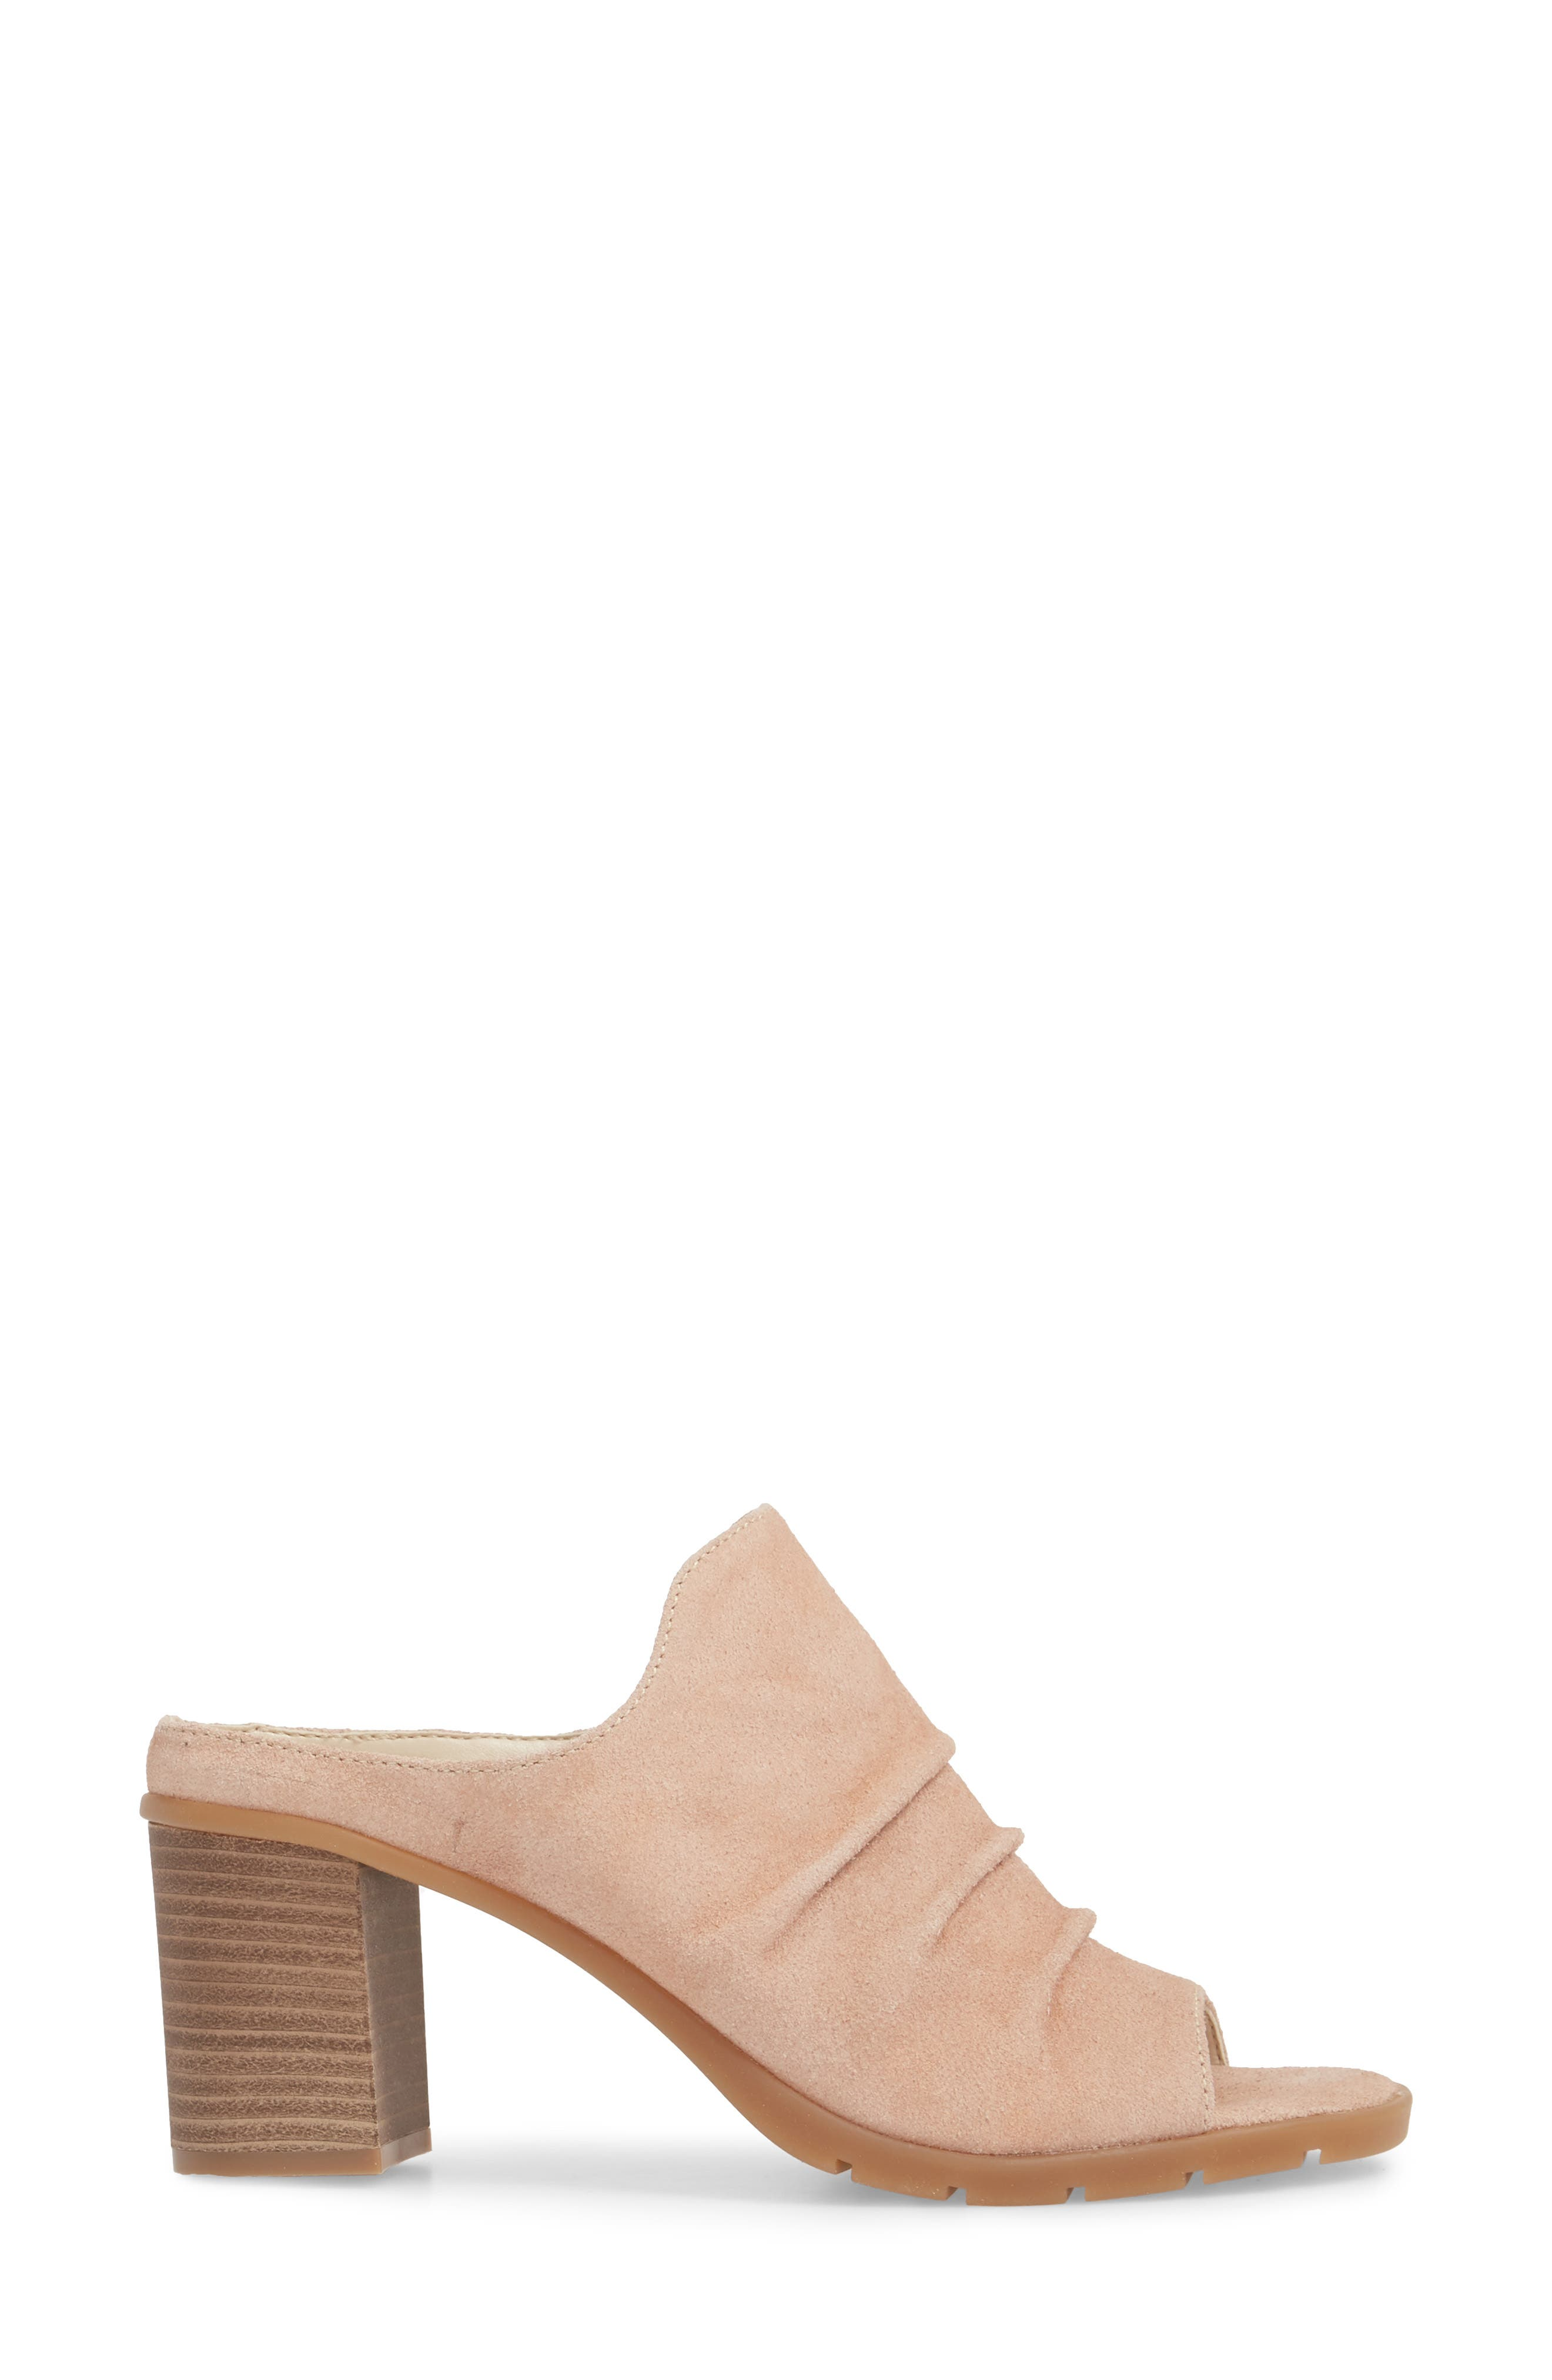 Aim to Pleat Mule,                             Alternate thumbnail 3, color,                             Rose Gold Leather